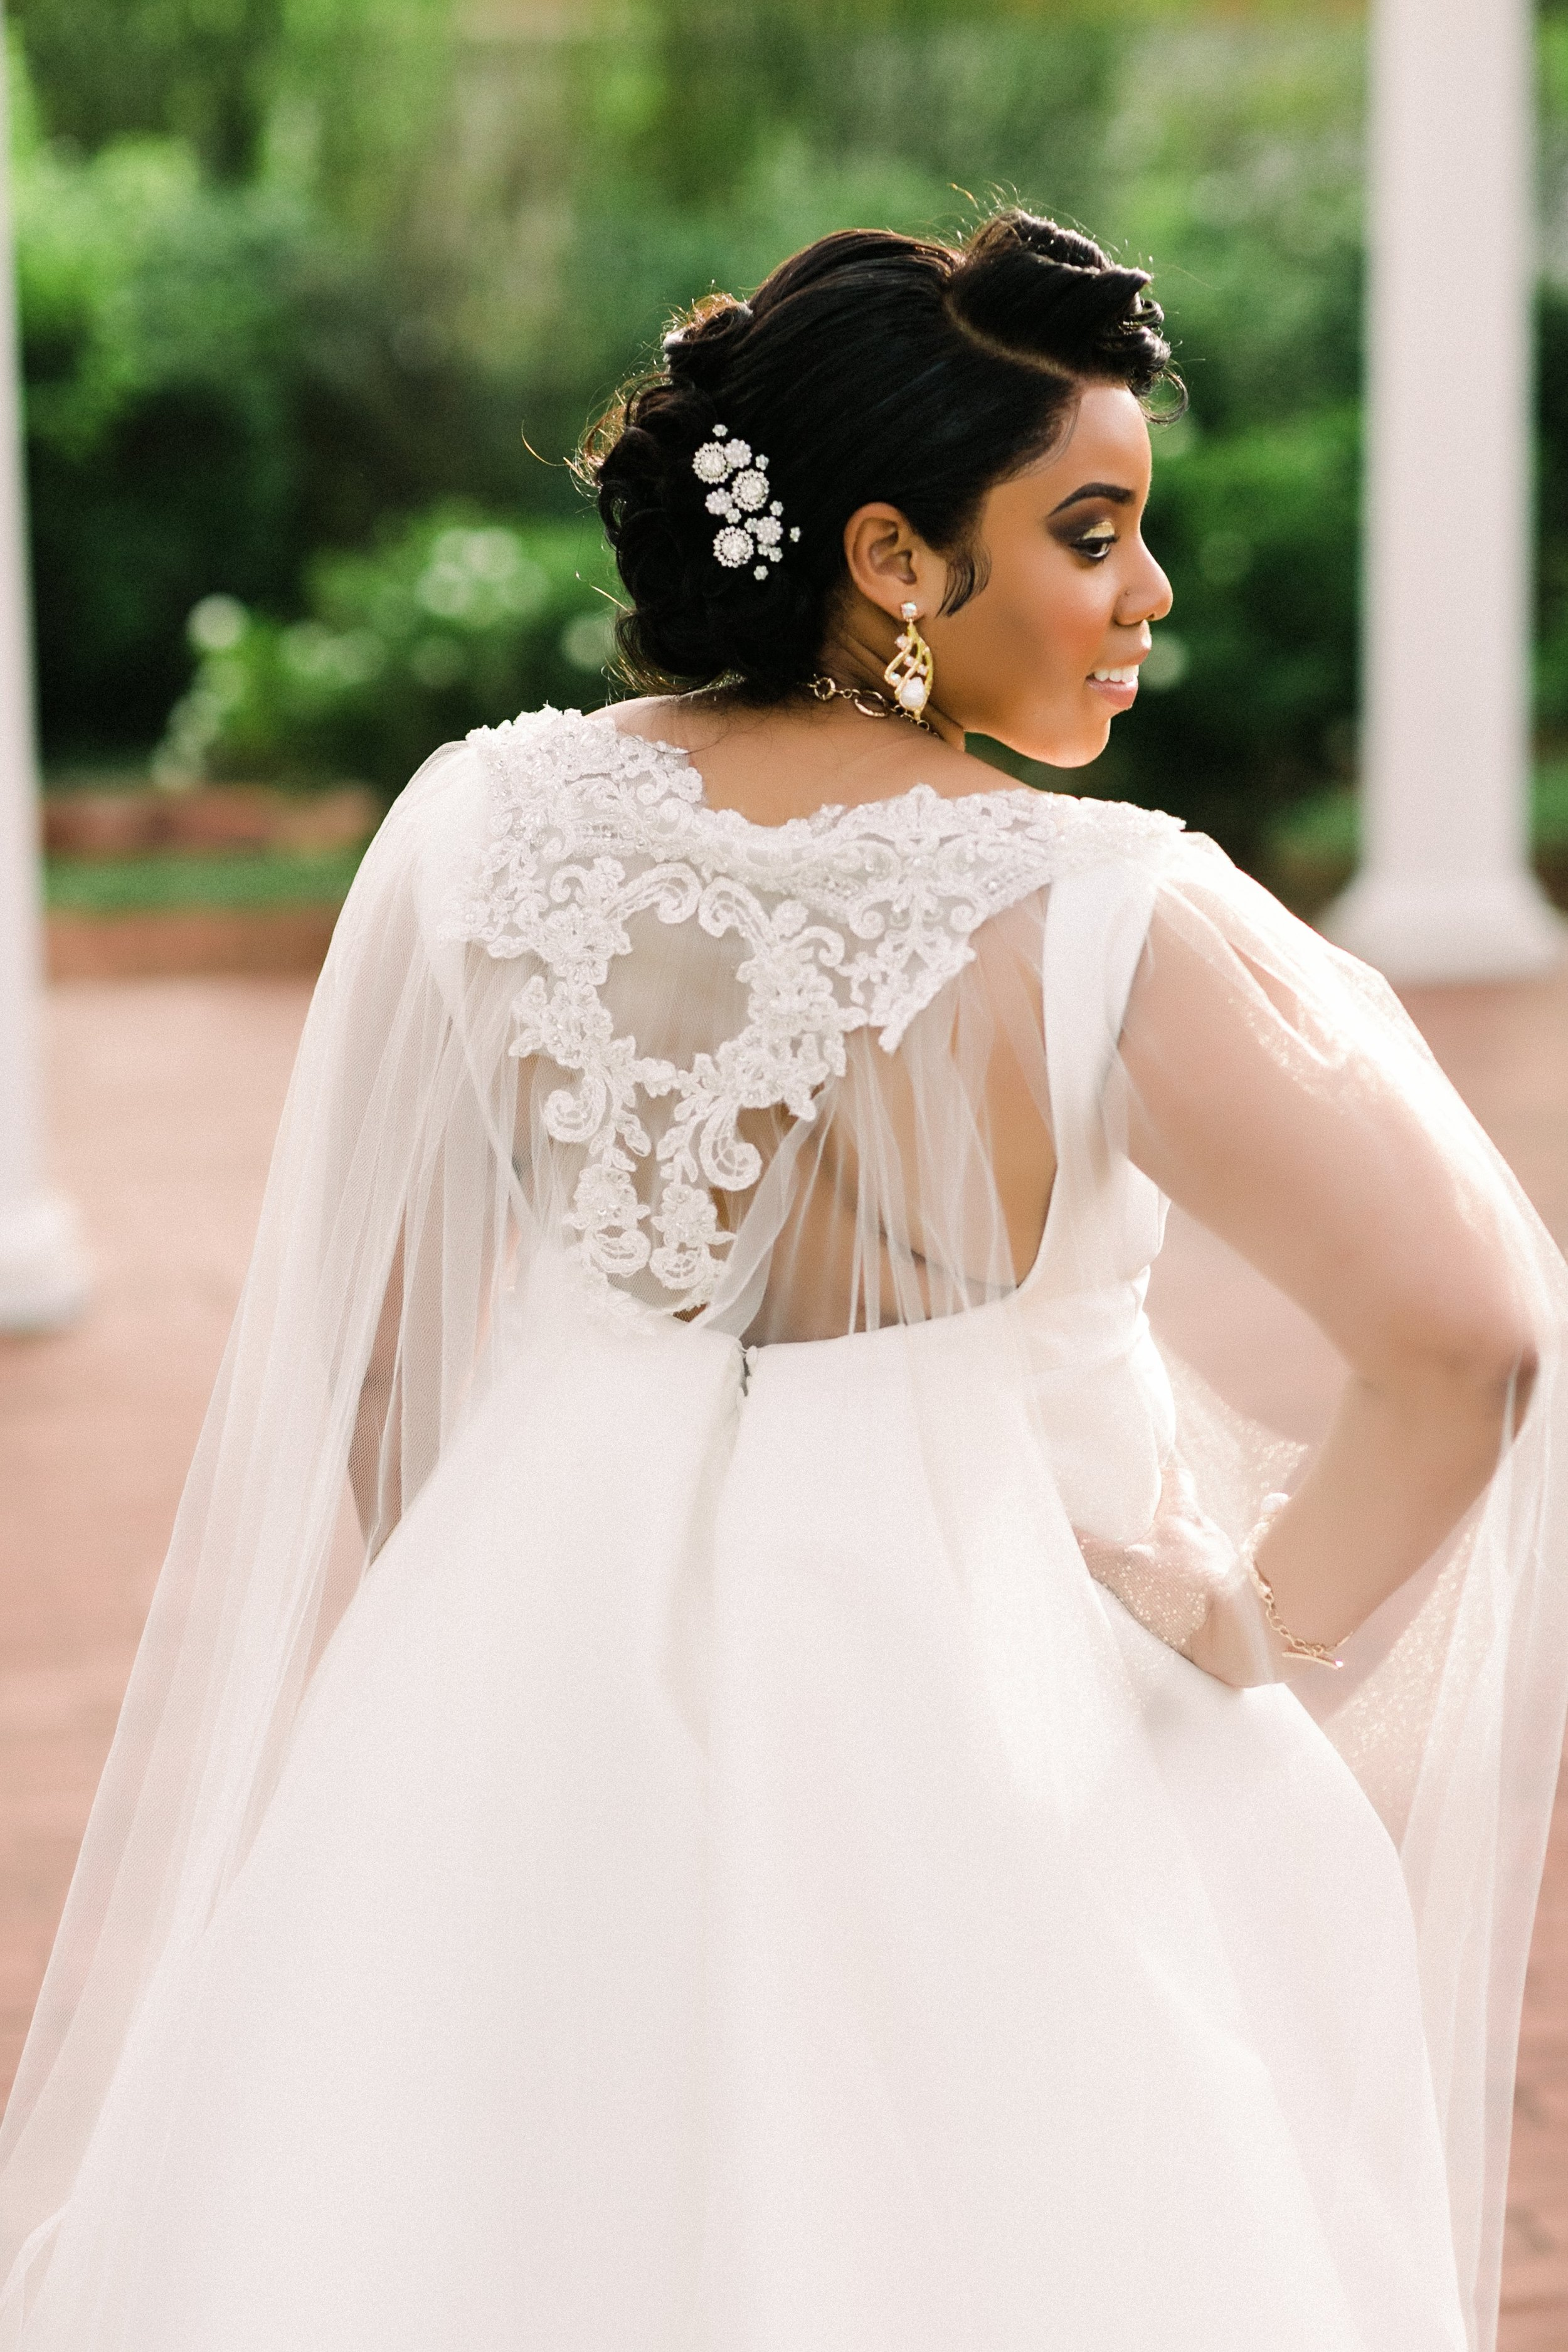 bridals-wichita-falls-texas-wedding-photographer-pronovias-gown-our-lady-queen-of-peace-wedding-bride-003.jpg